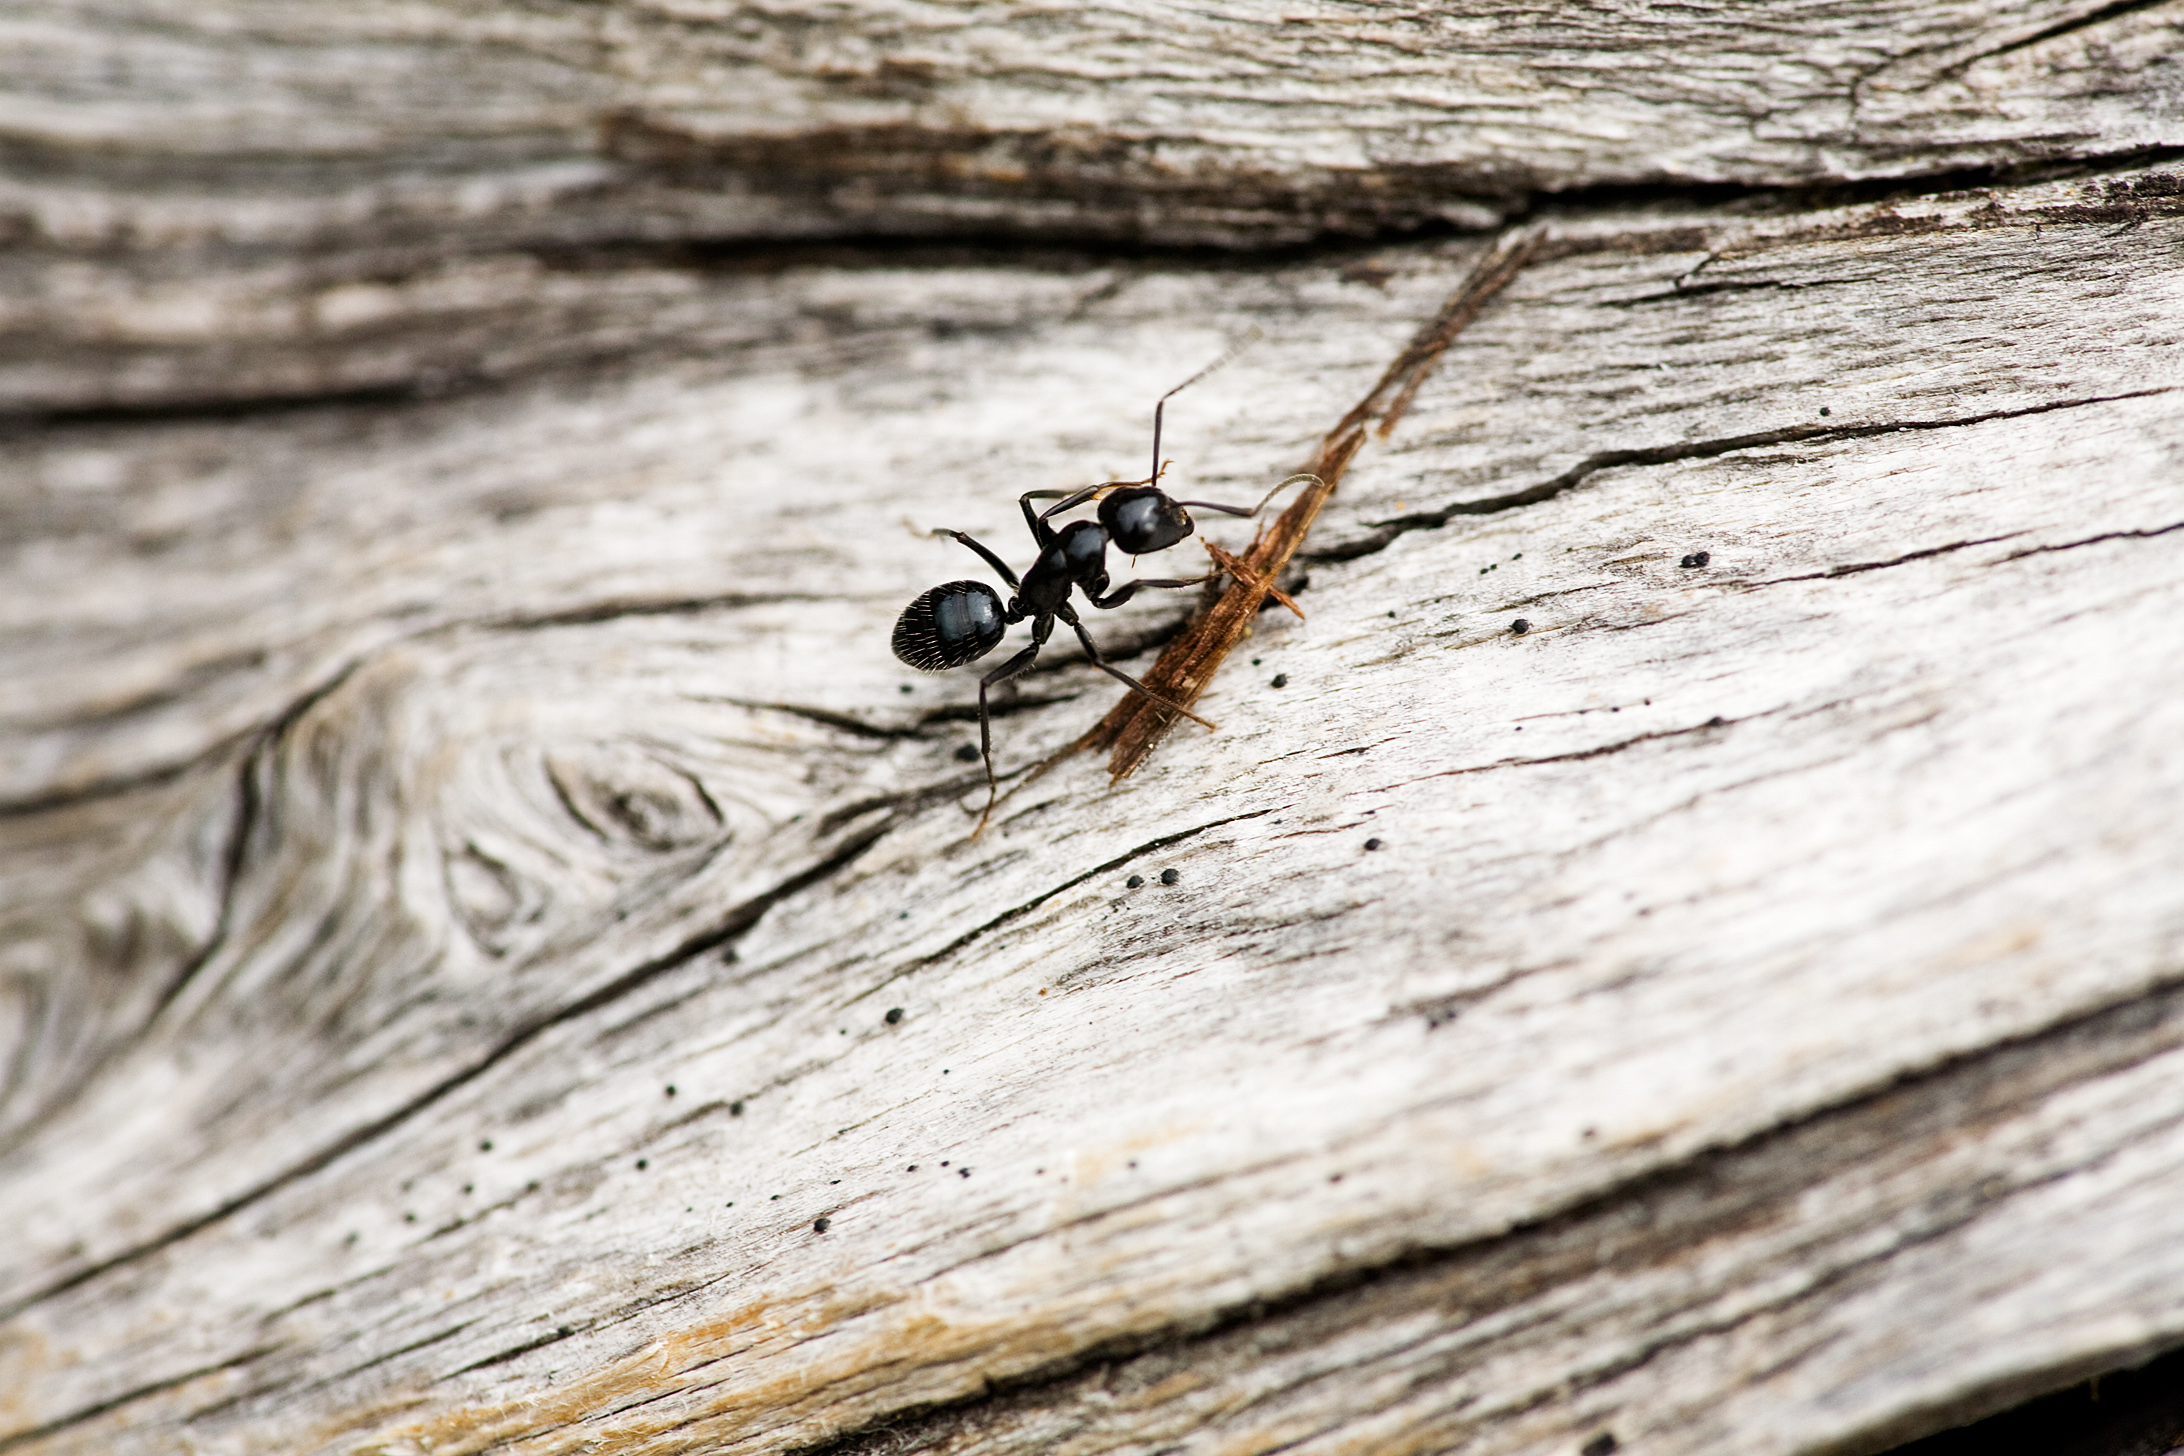 nt crawling on a piece of wood